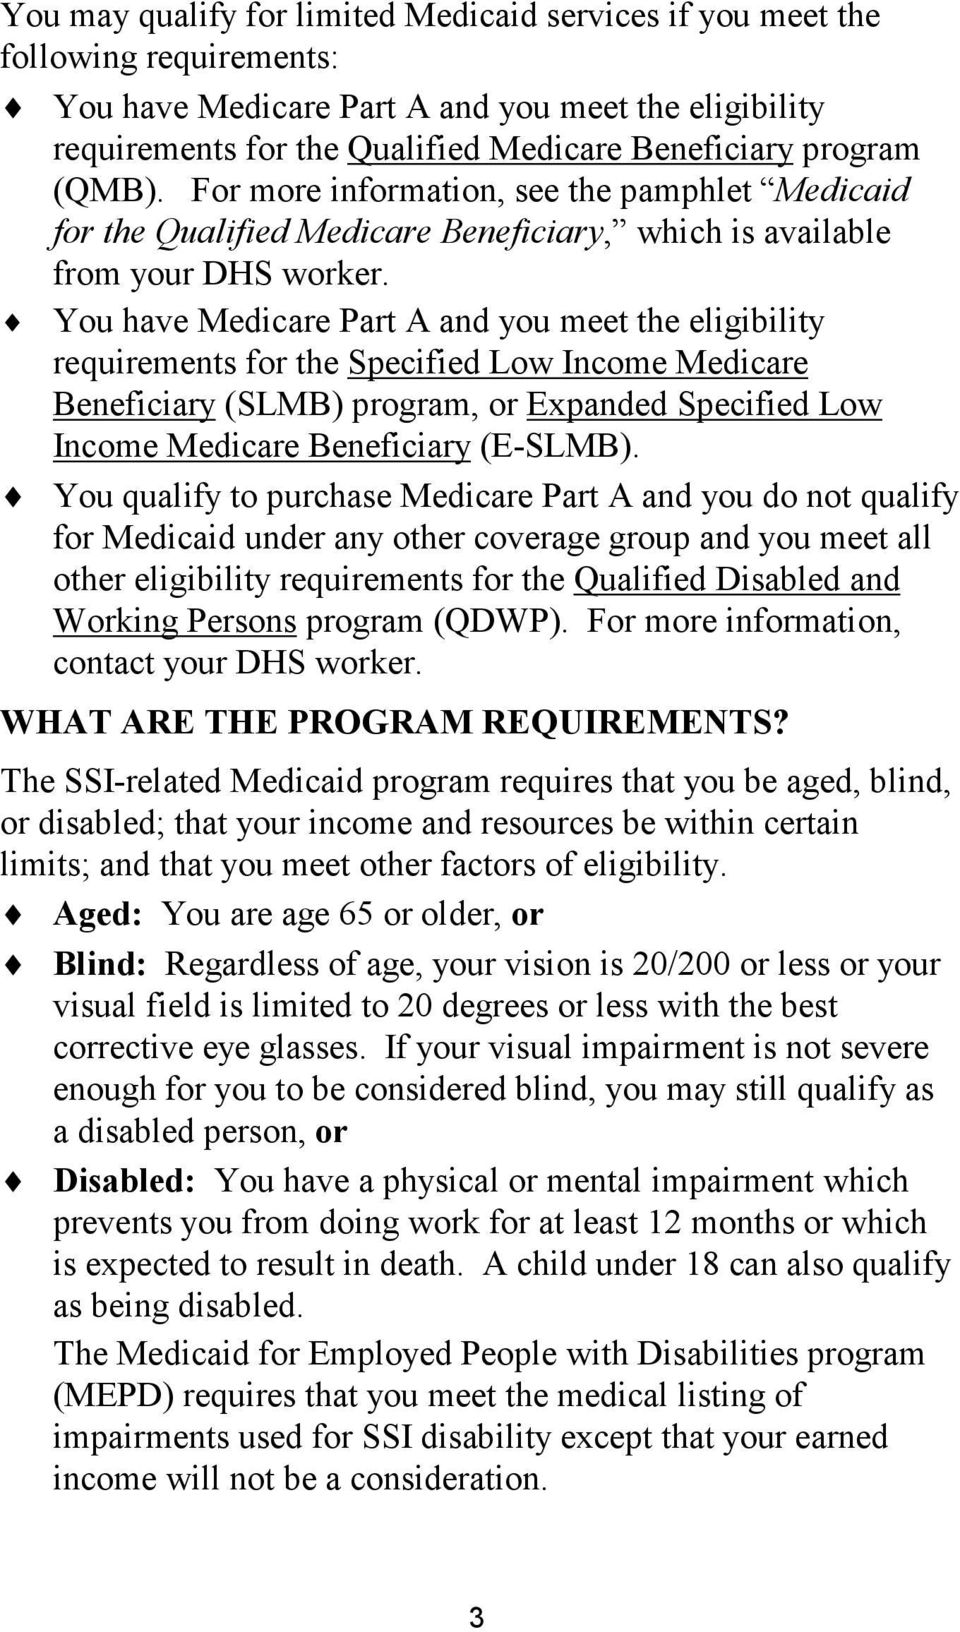 You have Medicare Part A and you meet the eligibility requirements for the Specified Low Income Medicare Beneficiary (SLMB) program, or Expanded Specified Low Income Medicare Beneficiary (E-SLMB).